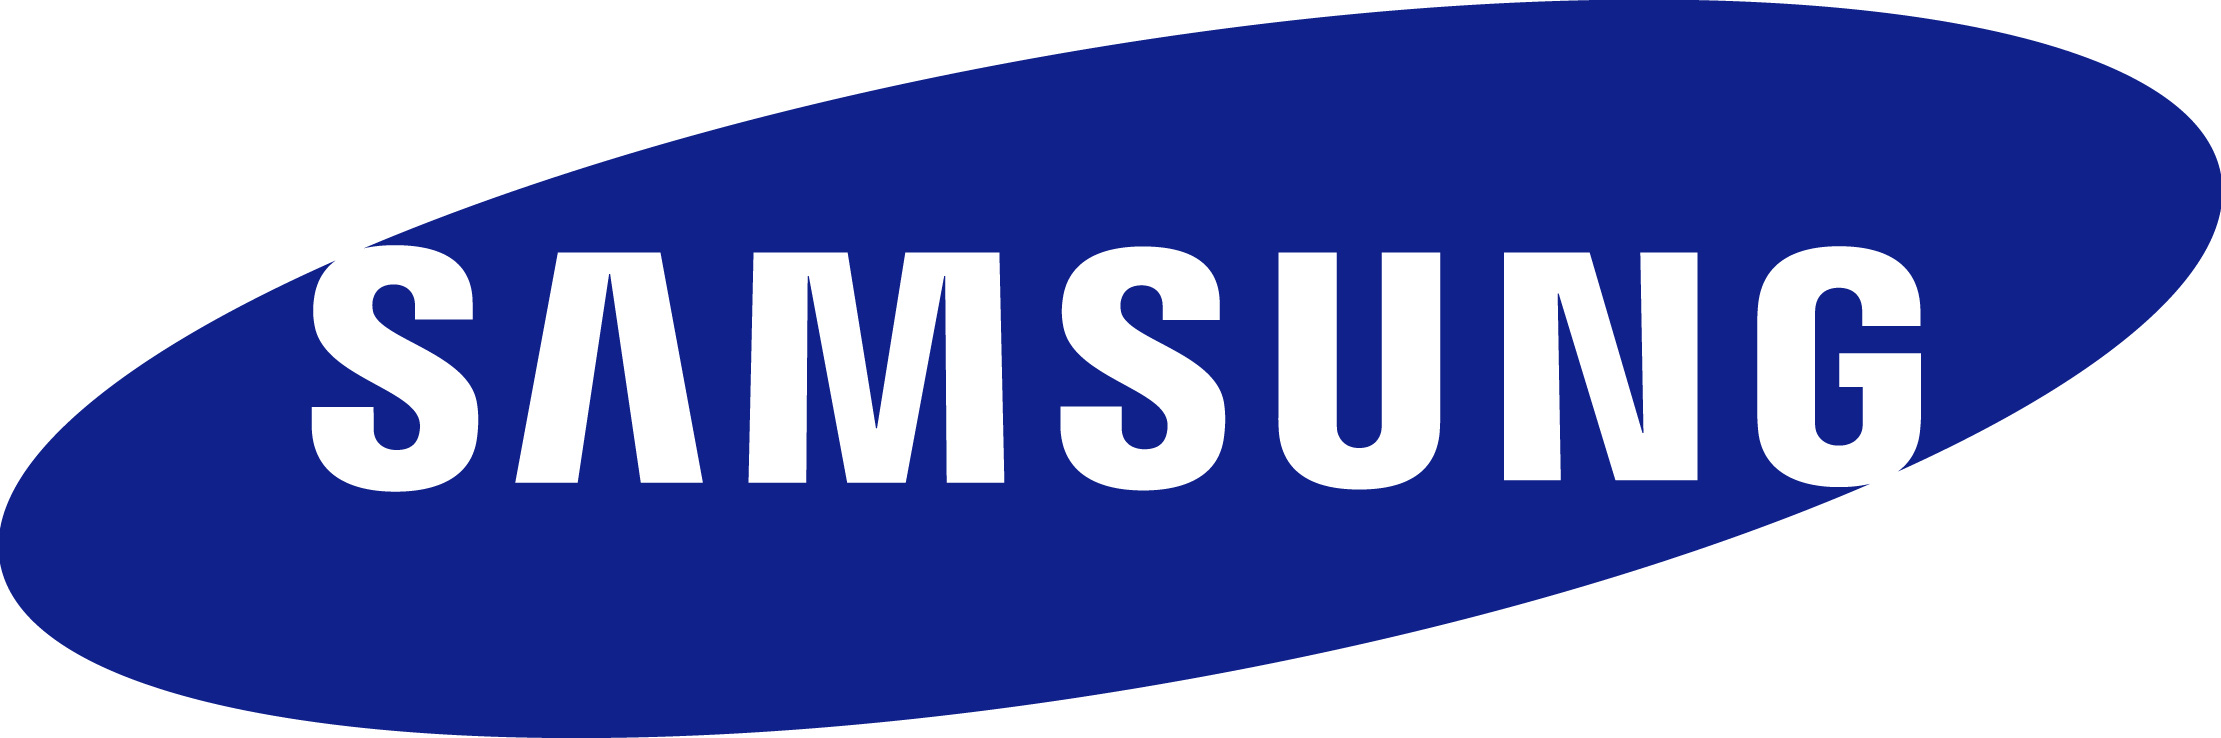 samsung economic environment Samsung economic environment introduction samsung has been in the business for over 70 years, it is a company which is considered to diversify its business ranging from mobile phones to washing machines, tv's to microwave, all kinds of home appliances to the most modern worldly technology needs of human kind samsung is a $160 billion company through research, reliability and a talented.